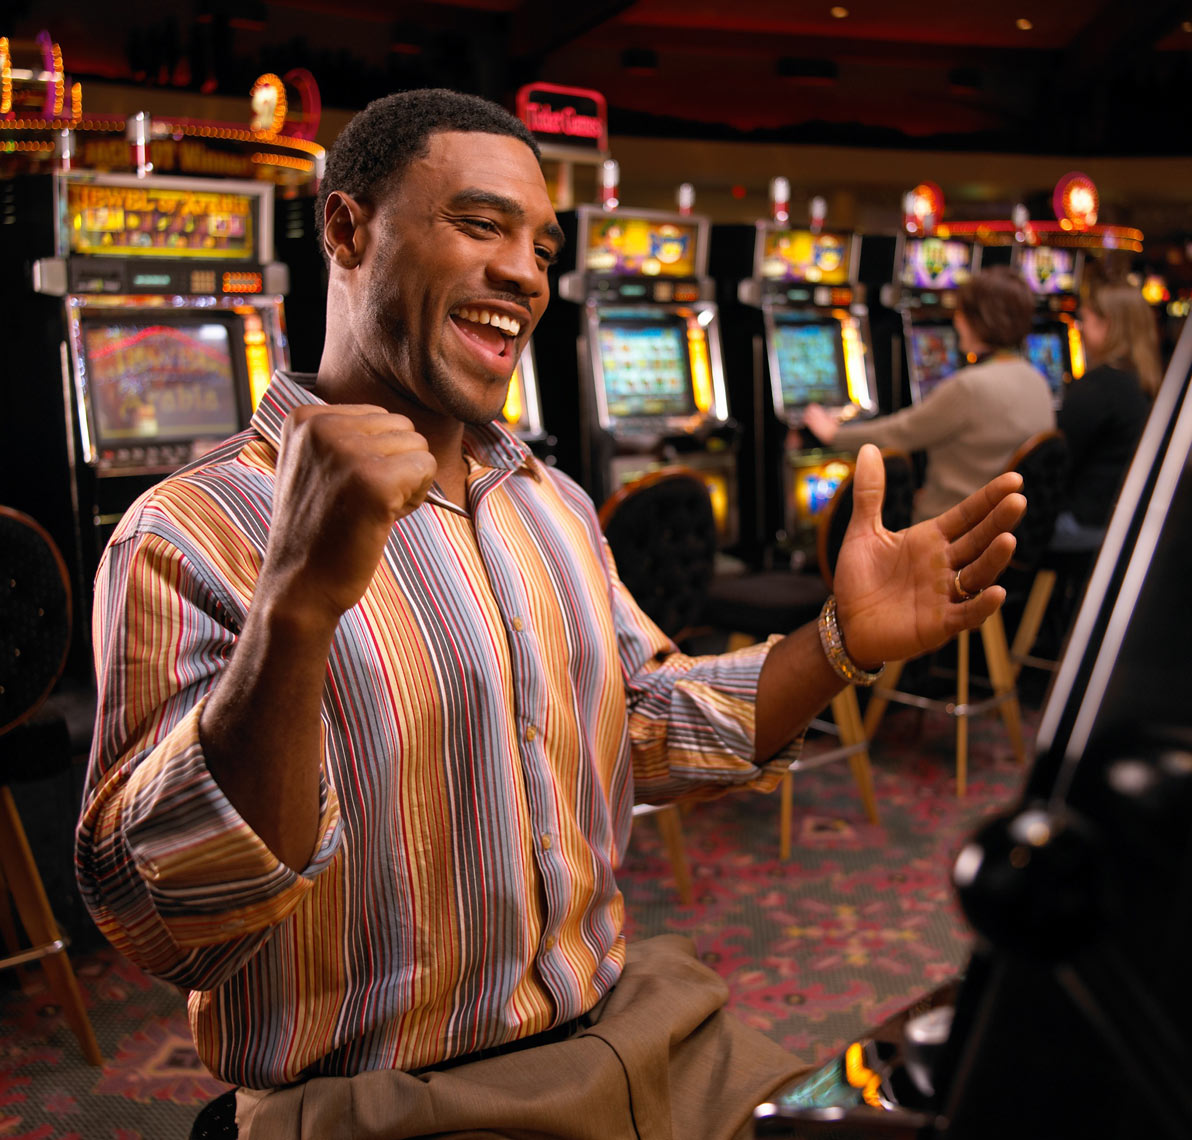 Black man/slot machine/casino/lifestyle photo